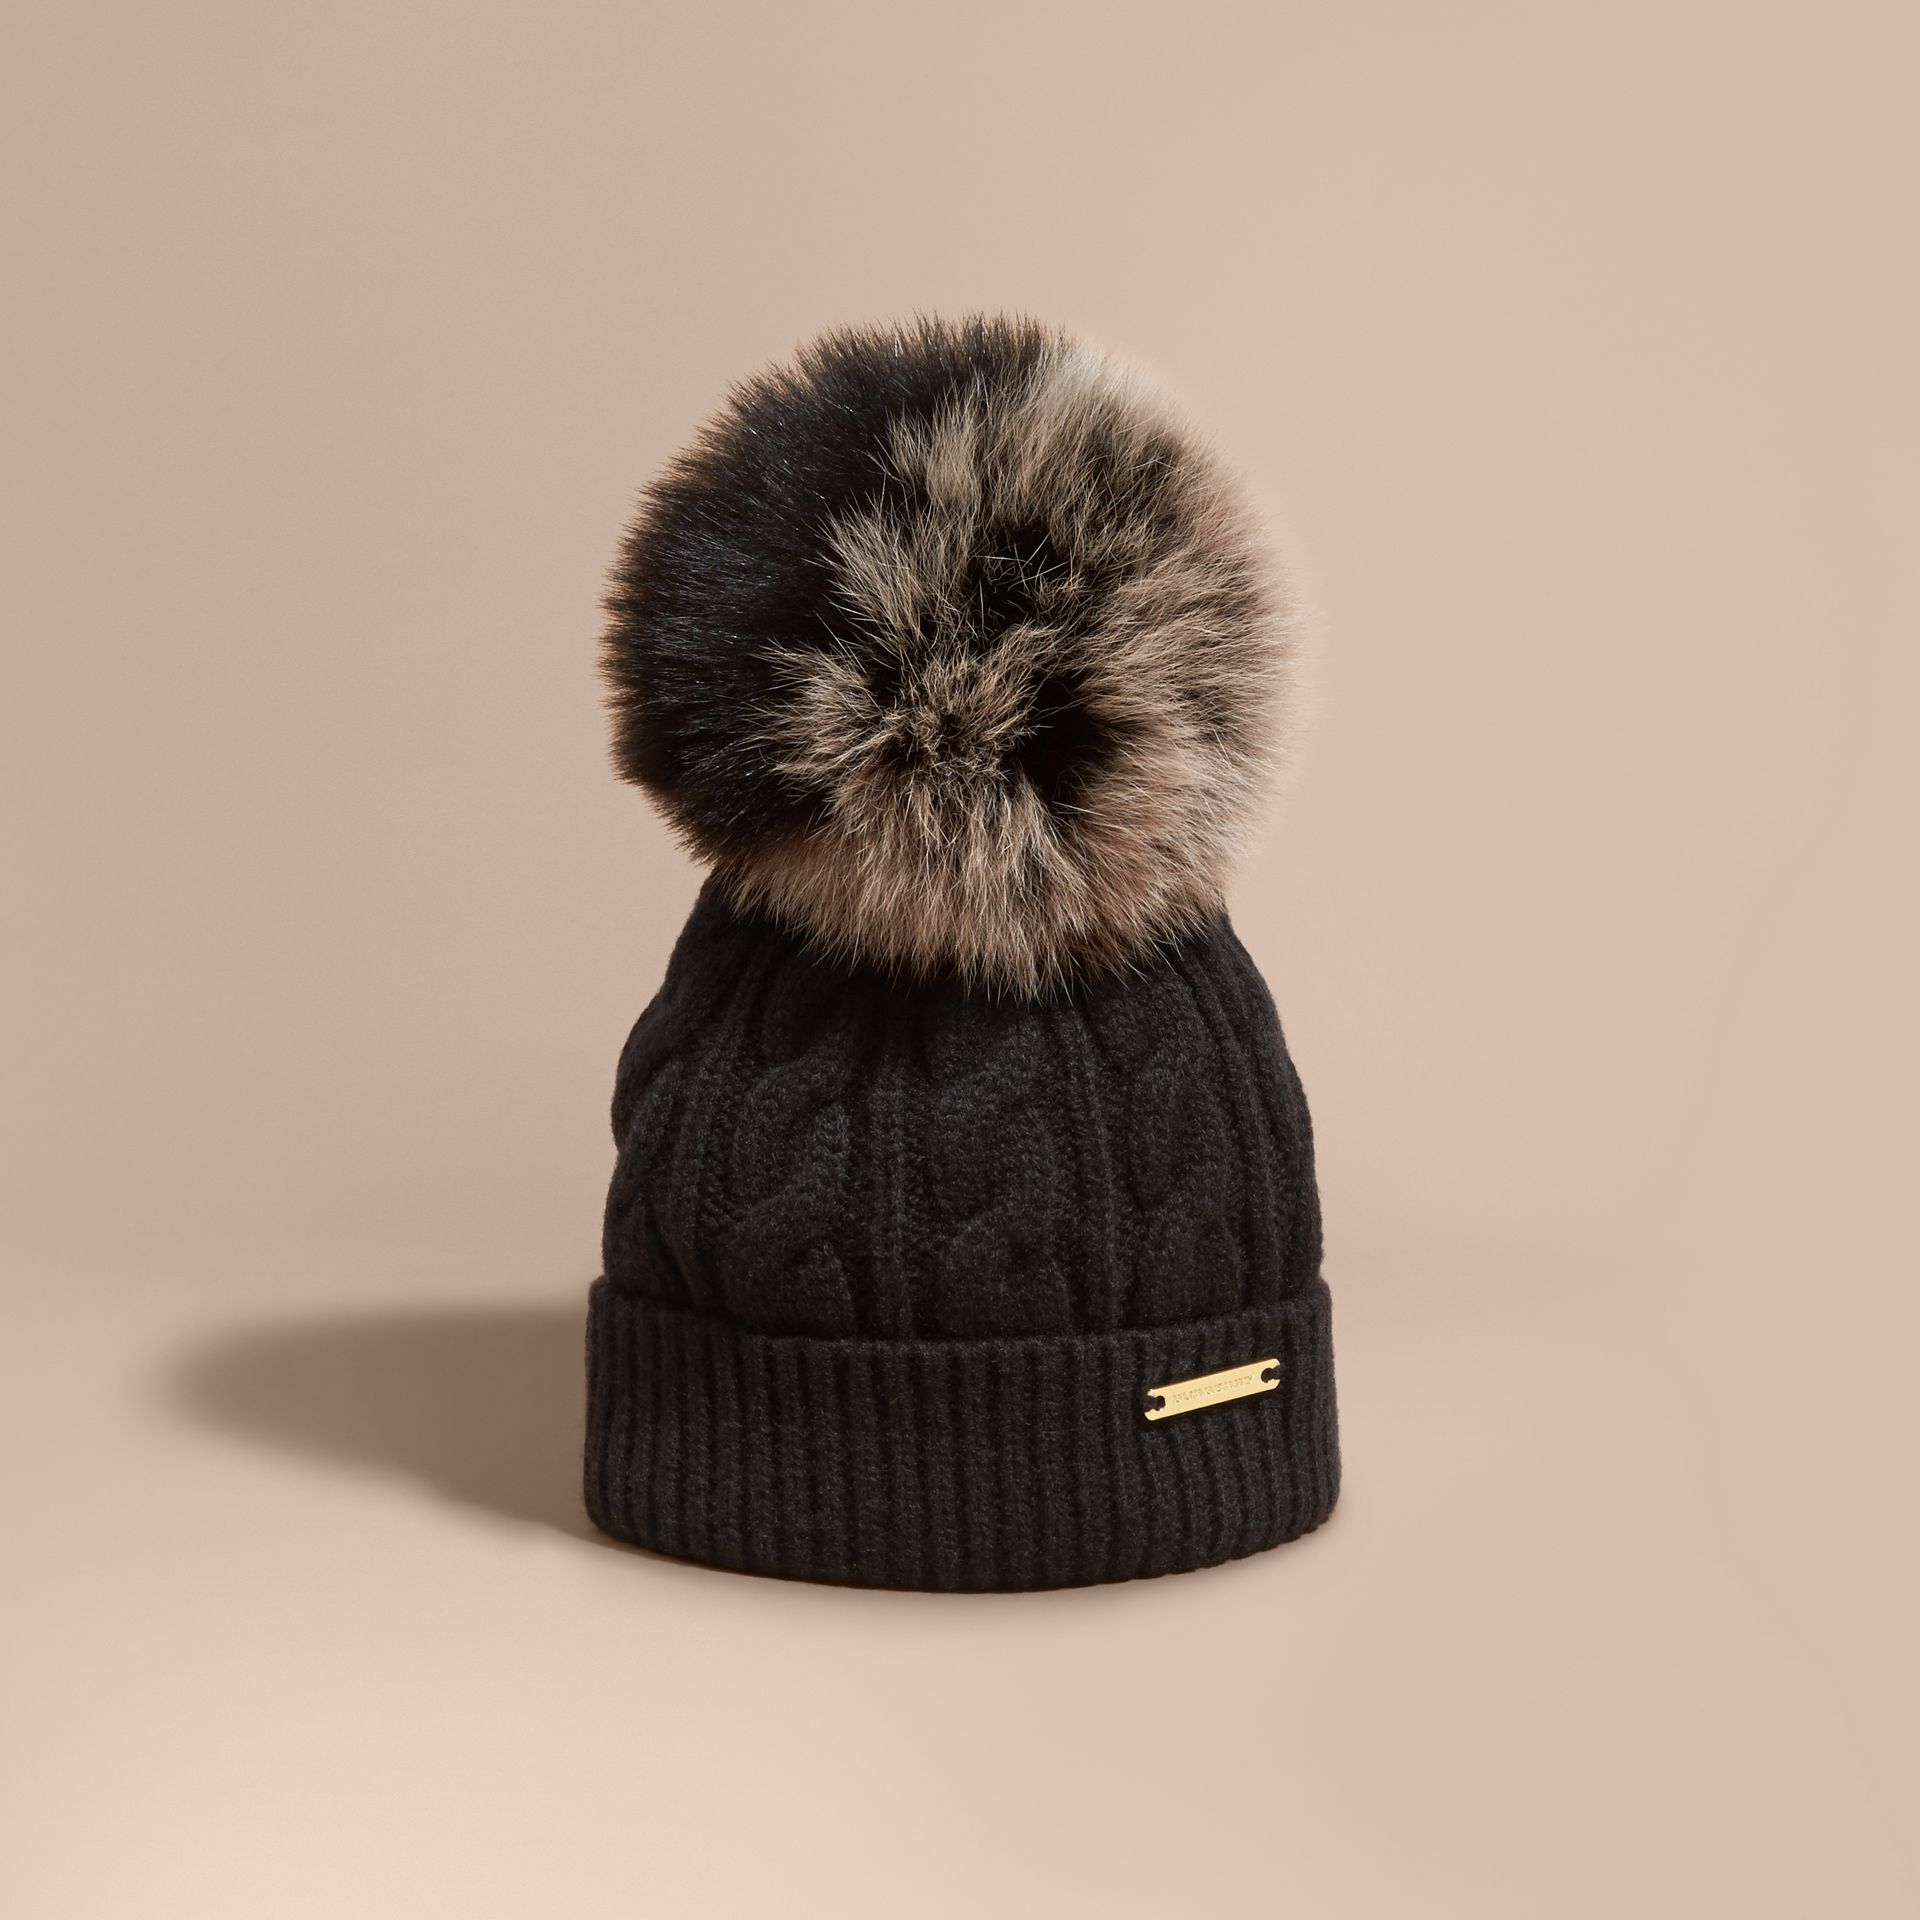 Black Wool Cashmere Beanie with Fur Pom-Pom Black - gallery image 1